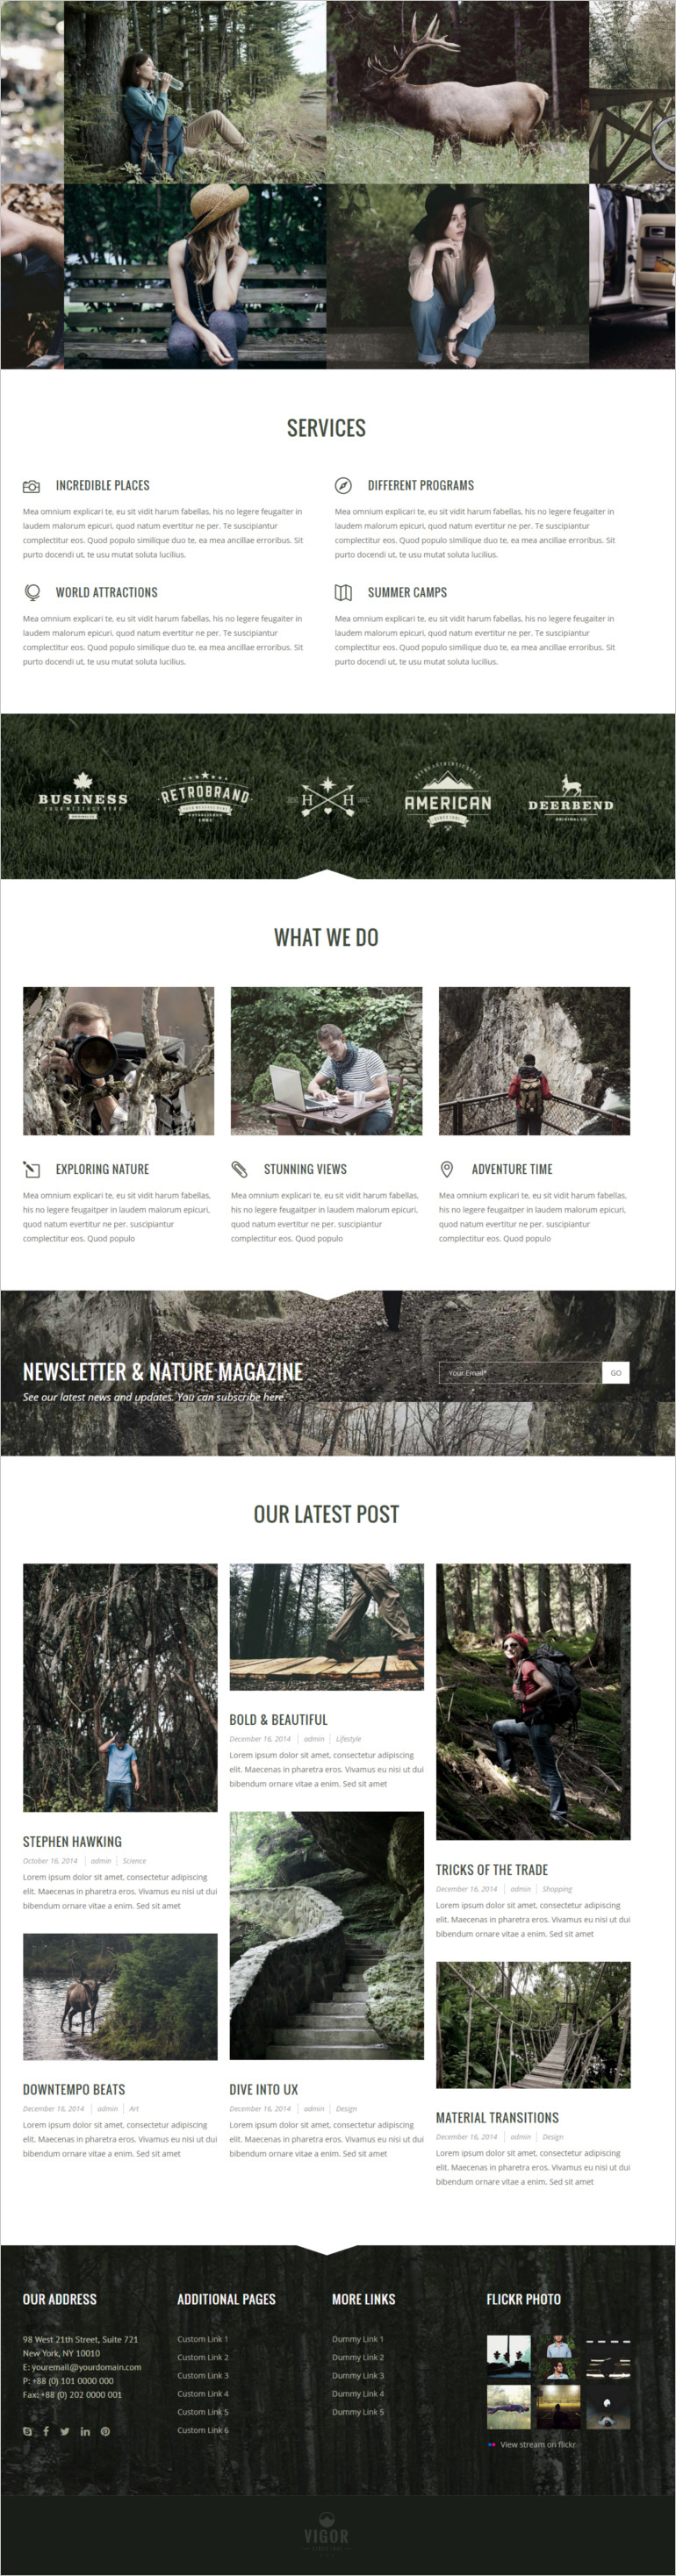 wordpress Vigor theme and template